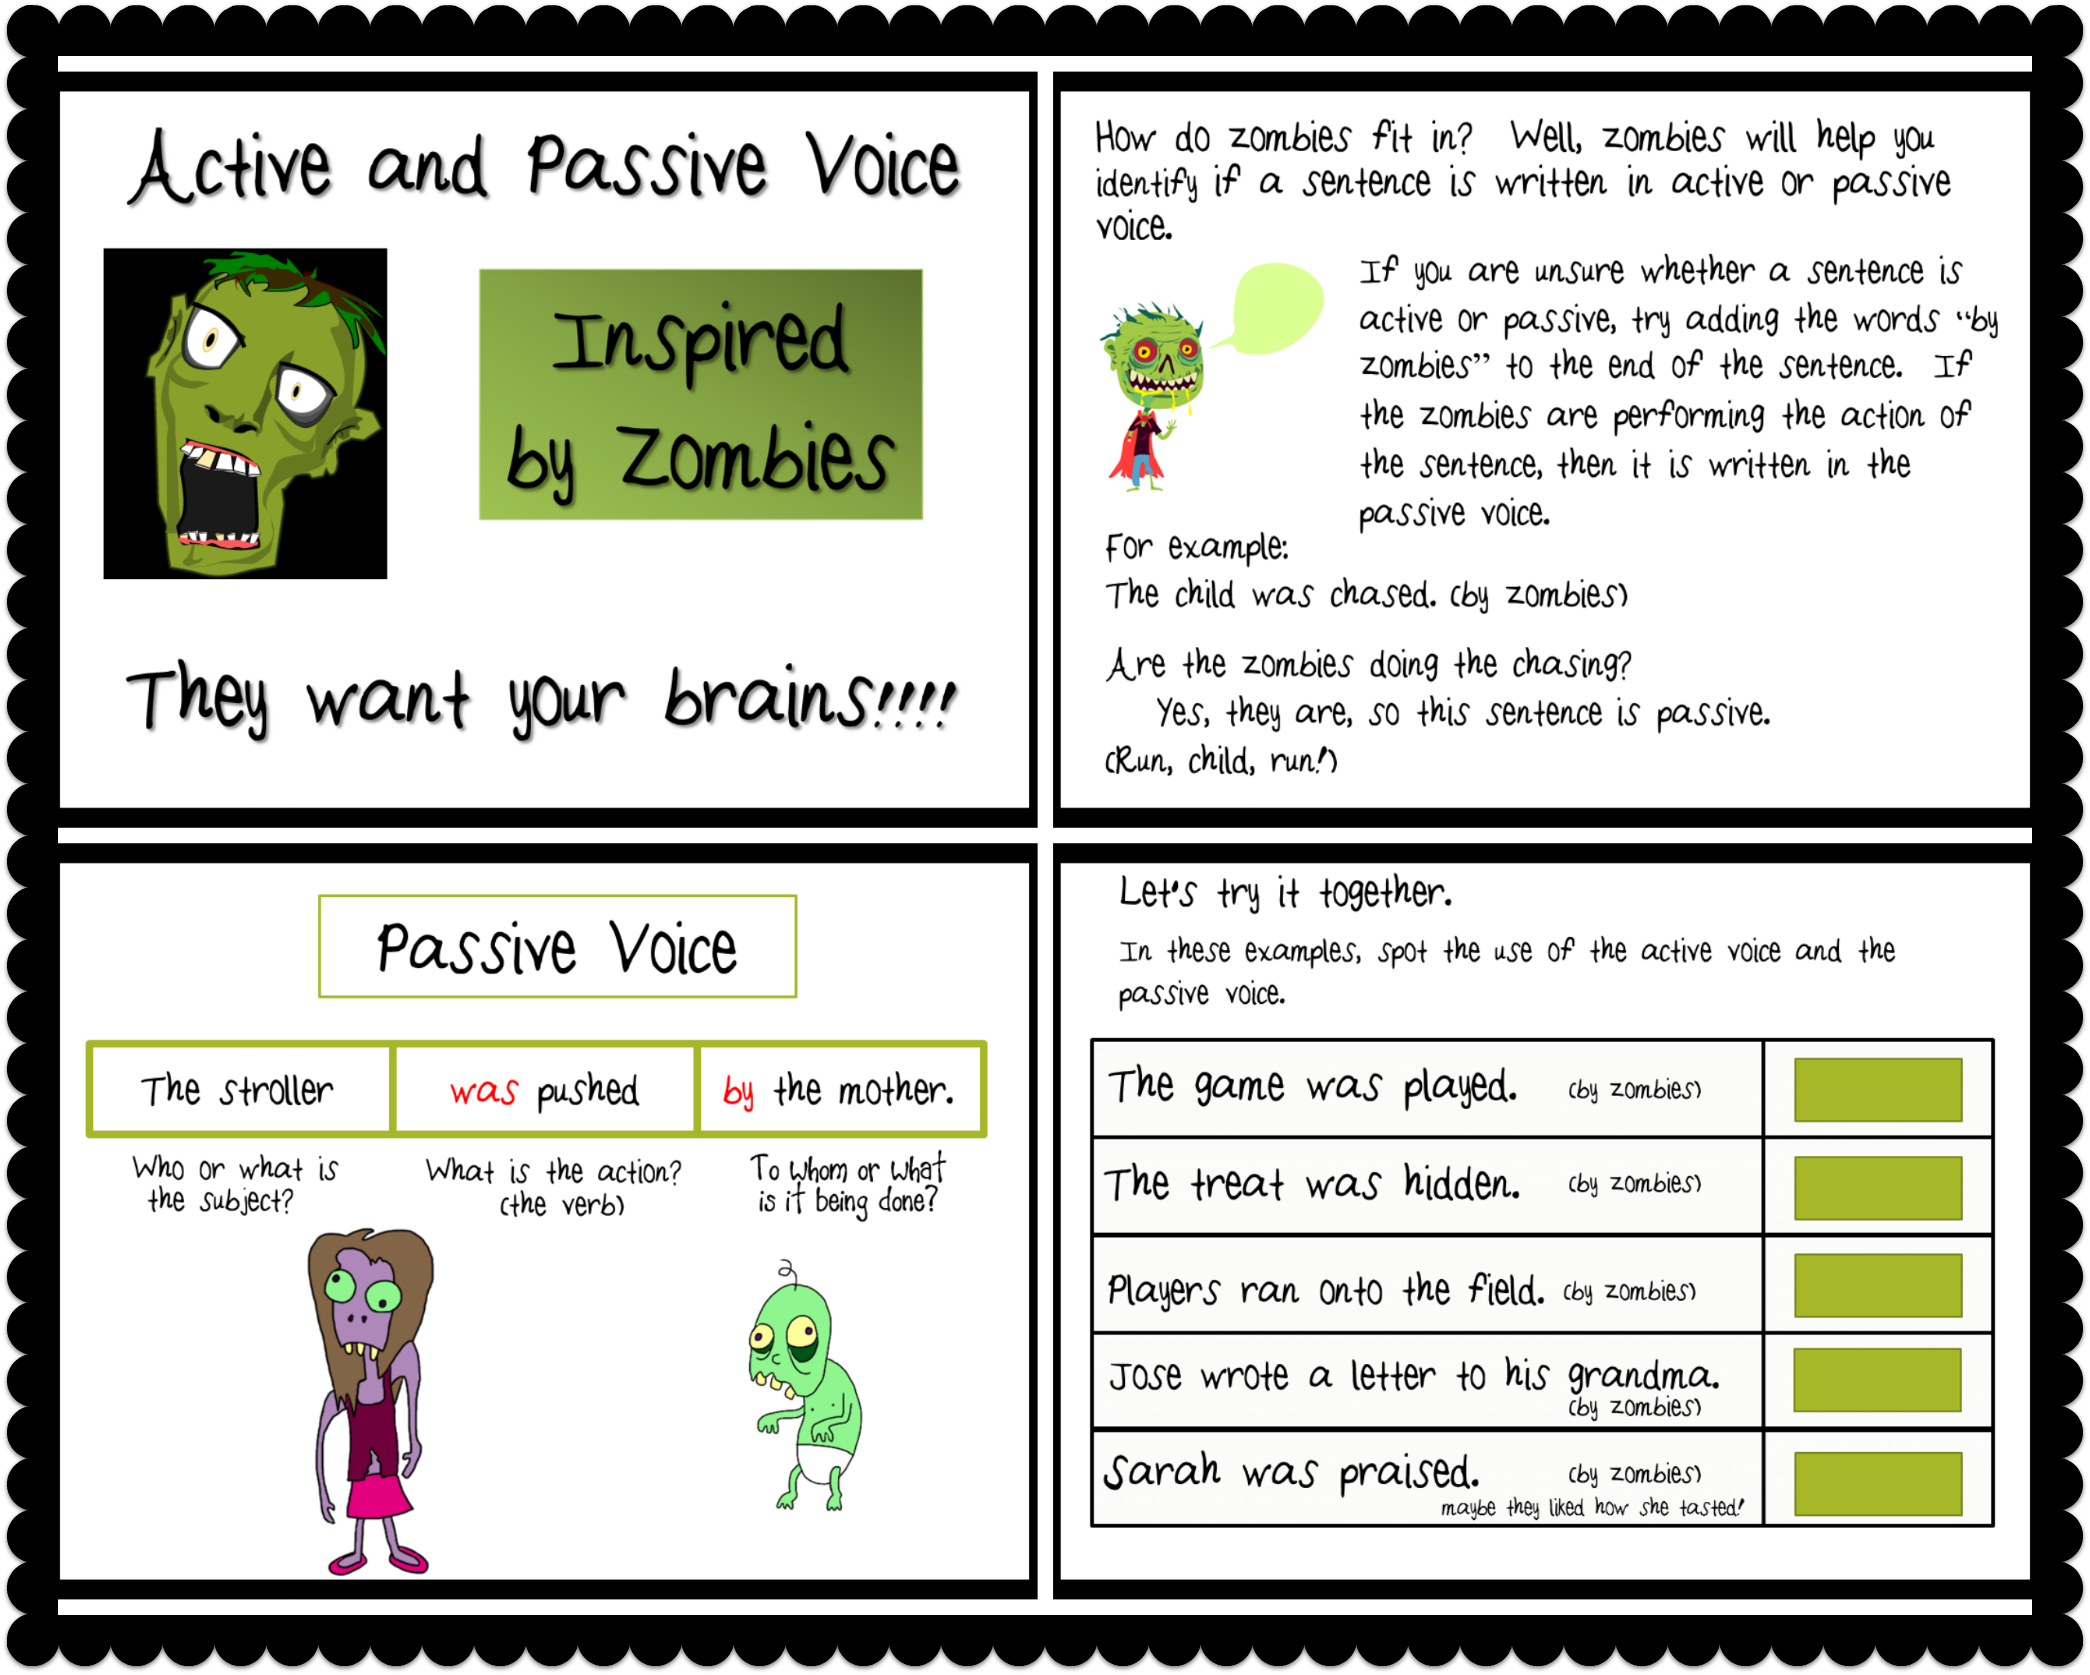 Active and Passive Voice with Zombies PowerPoint Active